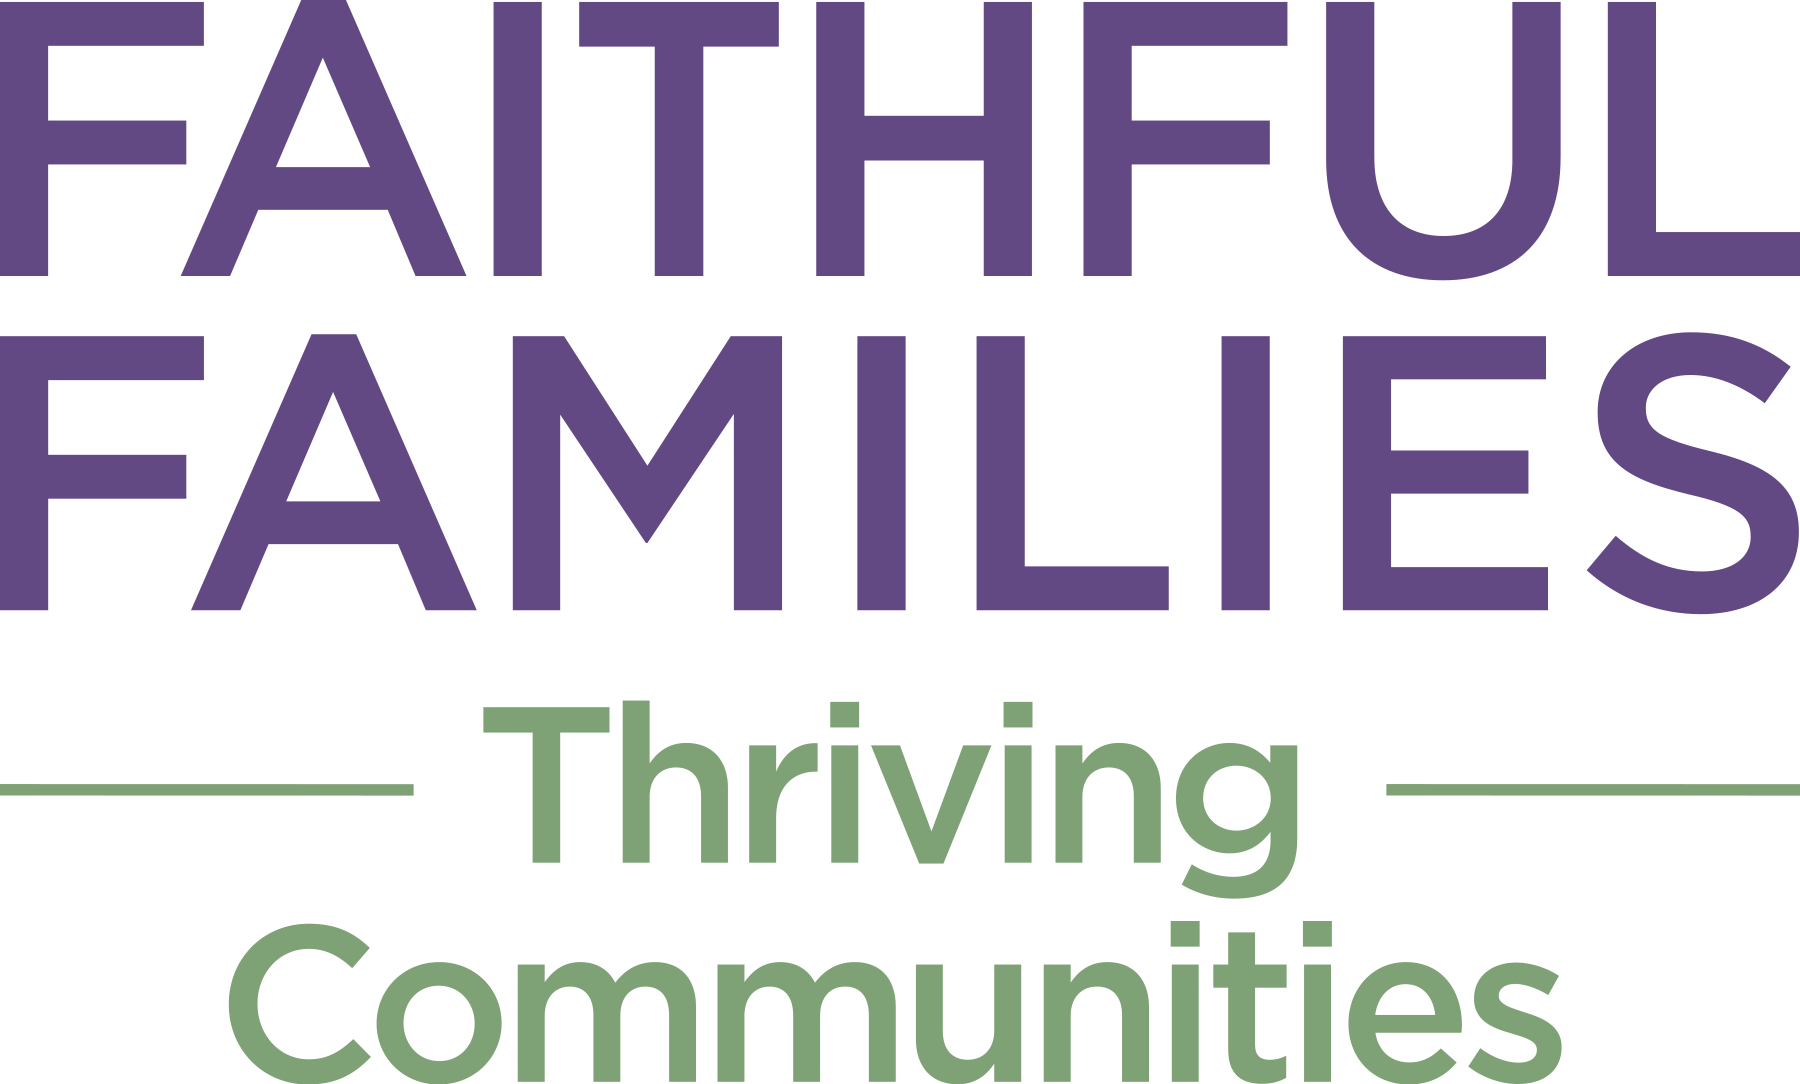 Faithful Families Logo